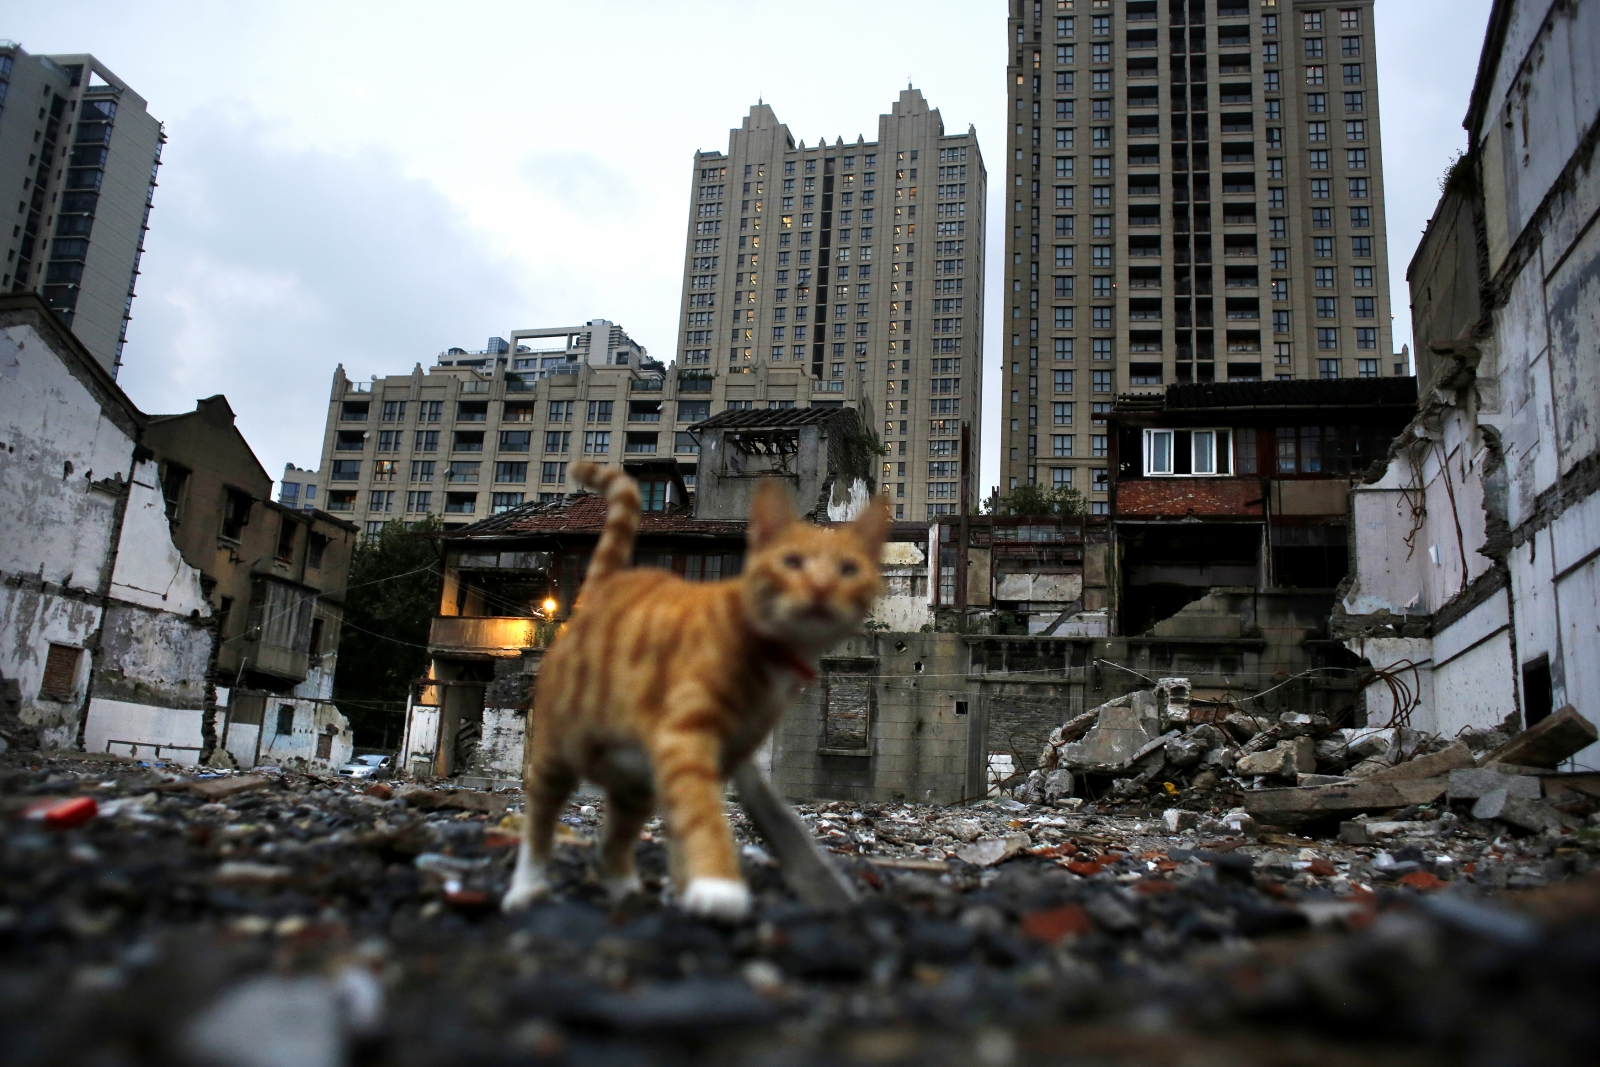 Cat Shanghai Xintiadi Demolition